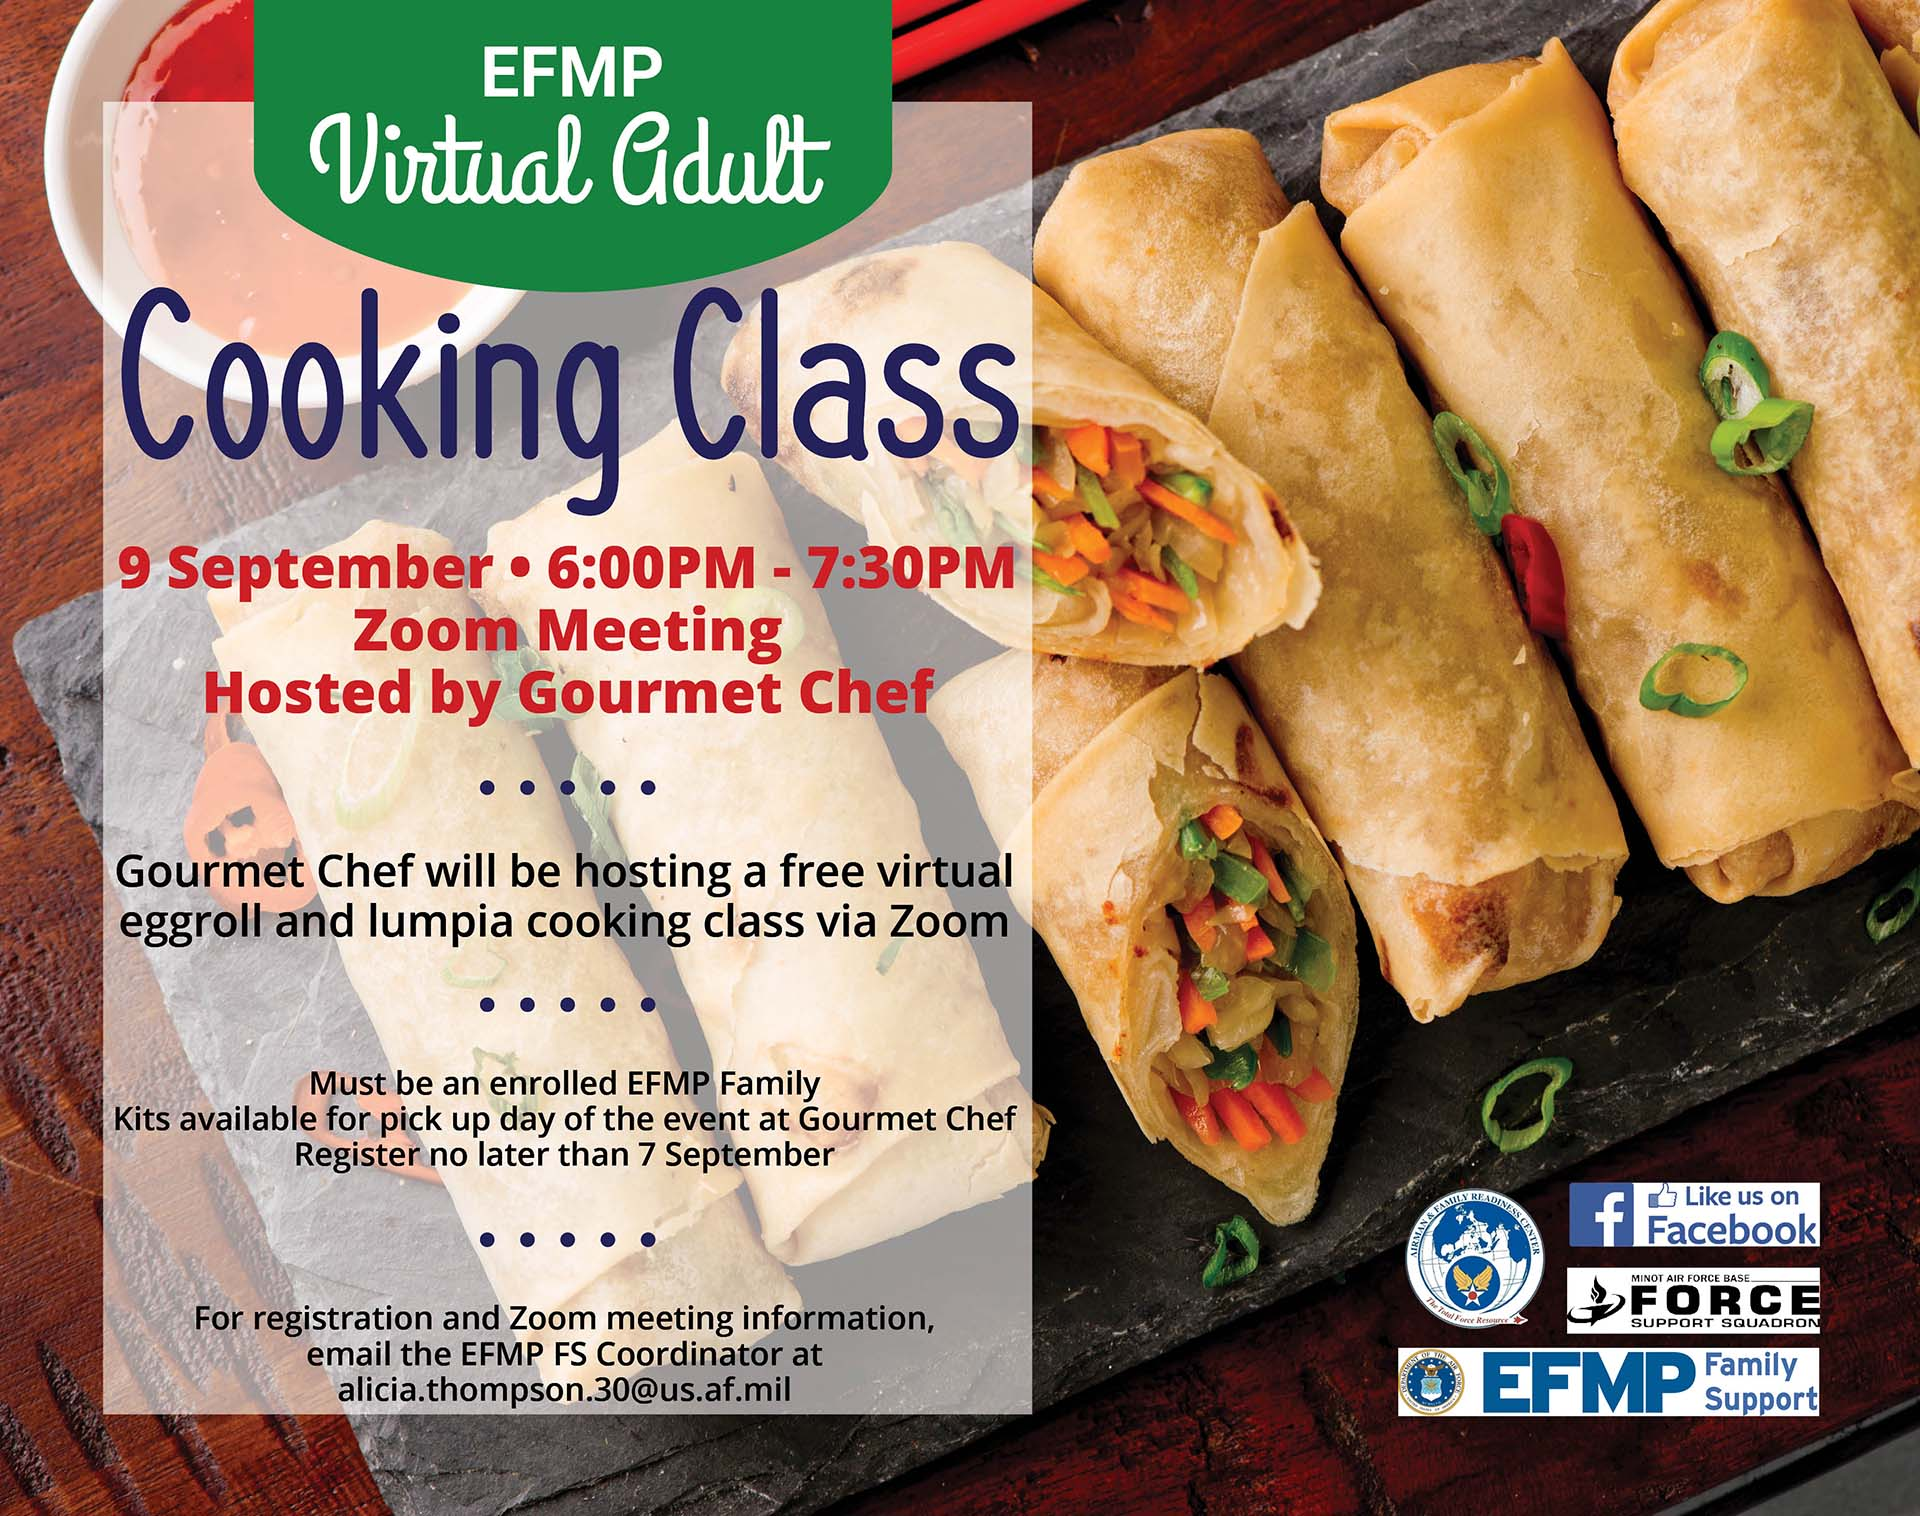 EFMP Virtual Adult Cooking Class - Eggrolls and Lumpia